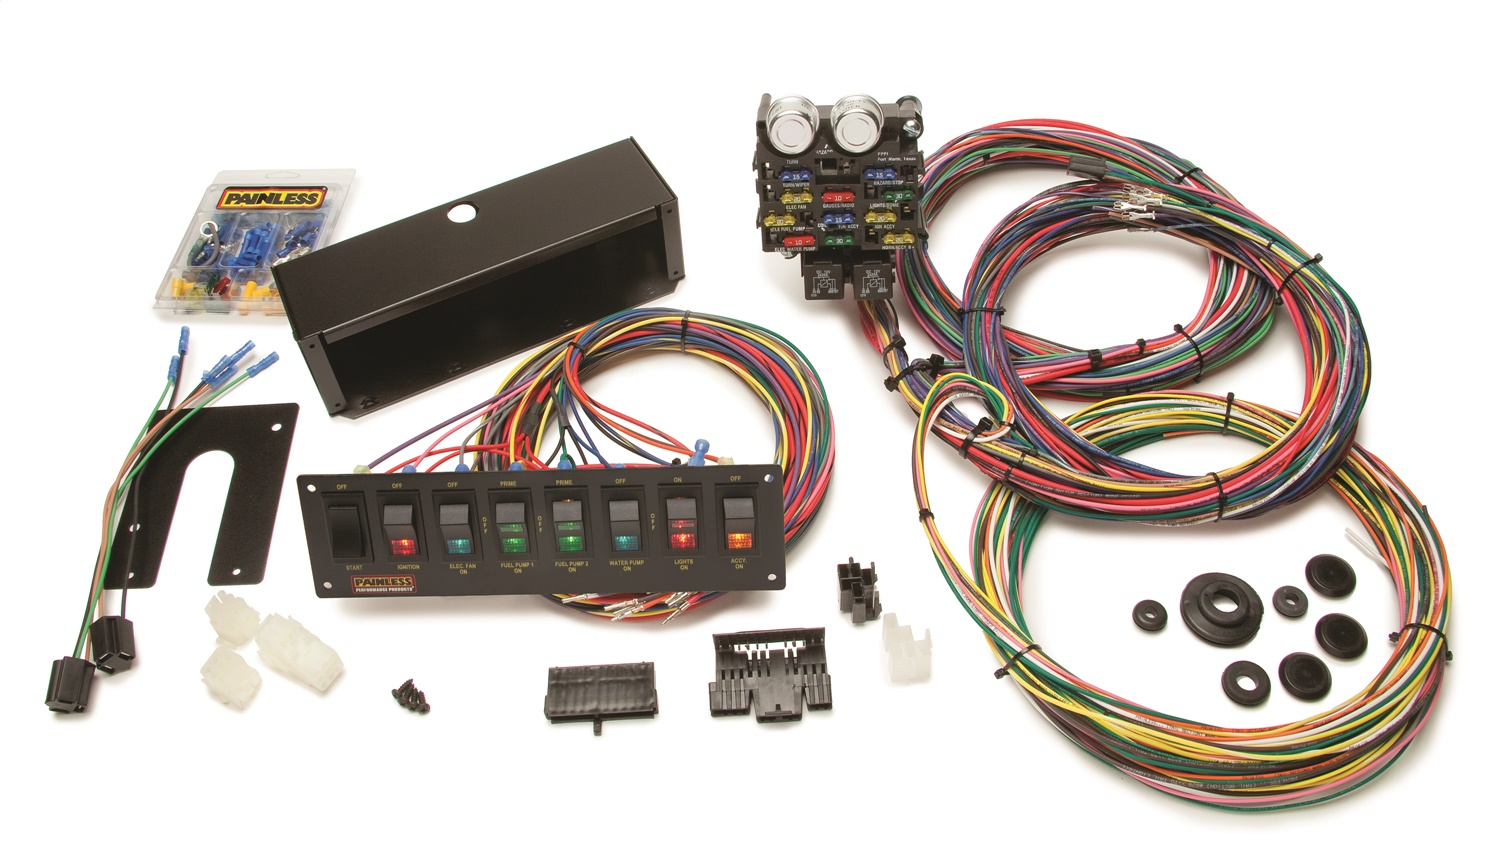 painless wiring 79 trans am dash diagram 50003 21 circuit pro street chassis